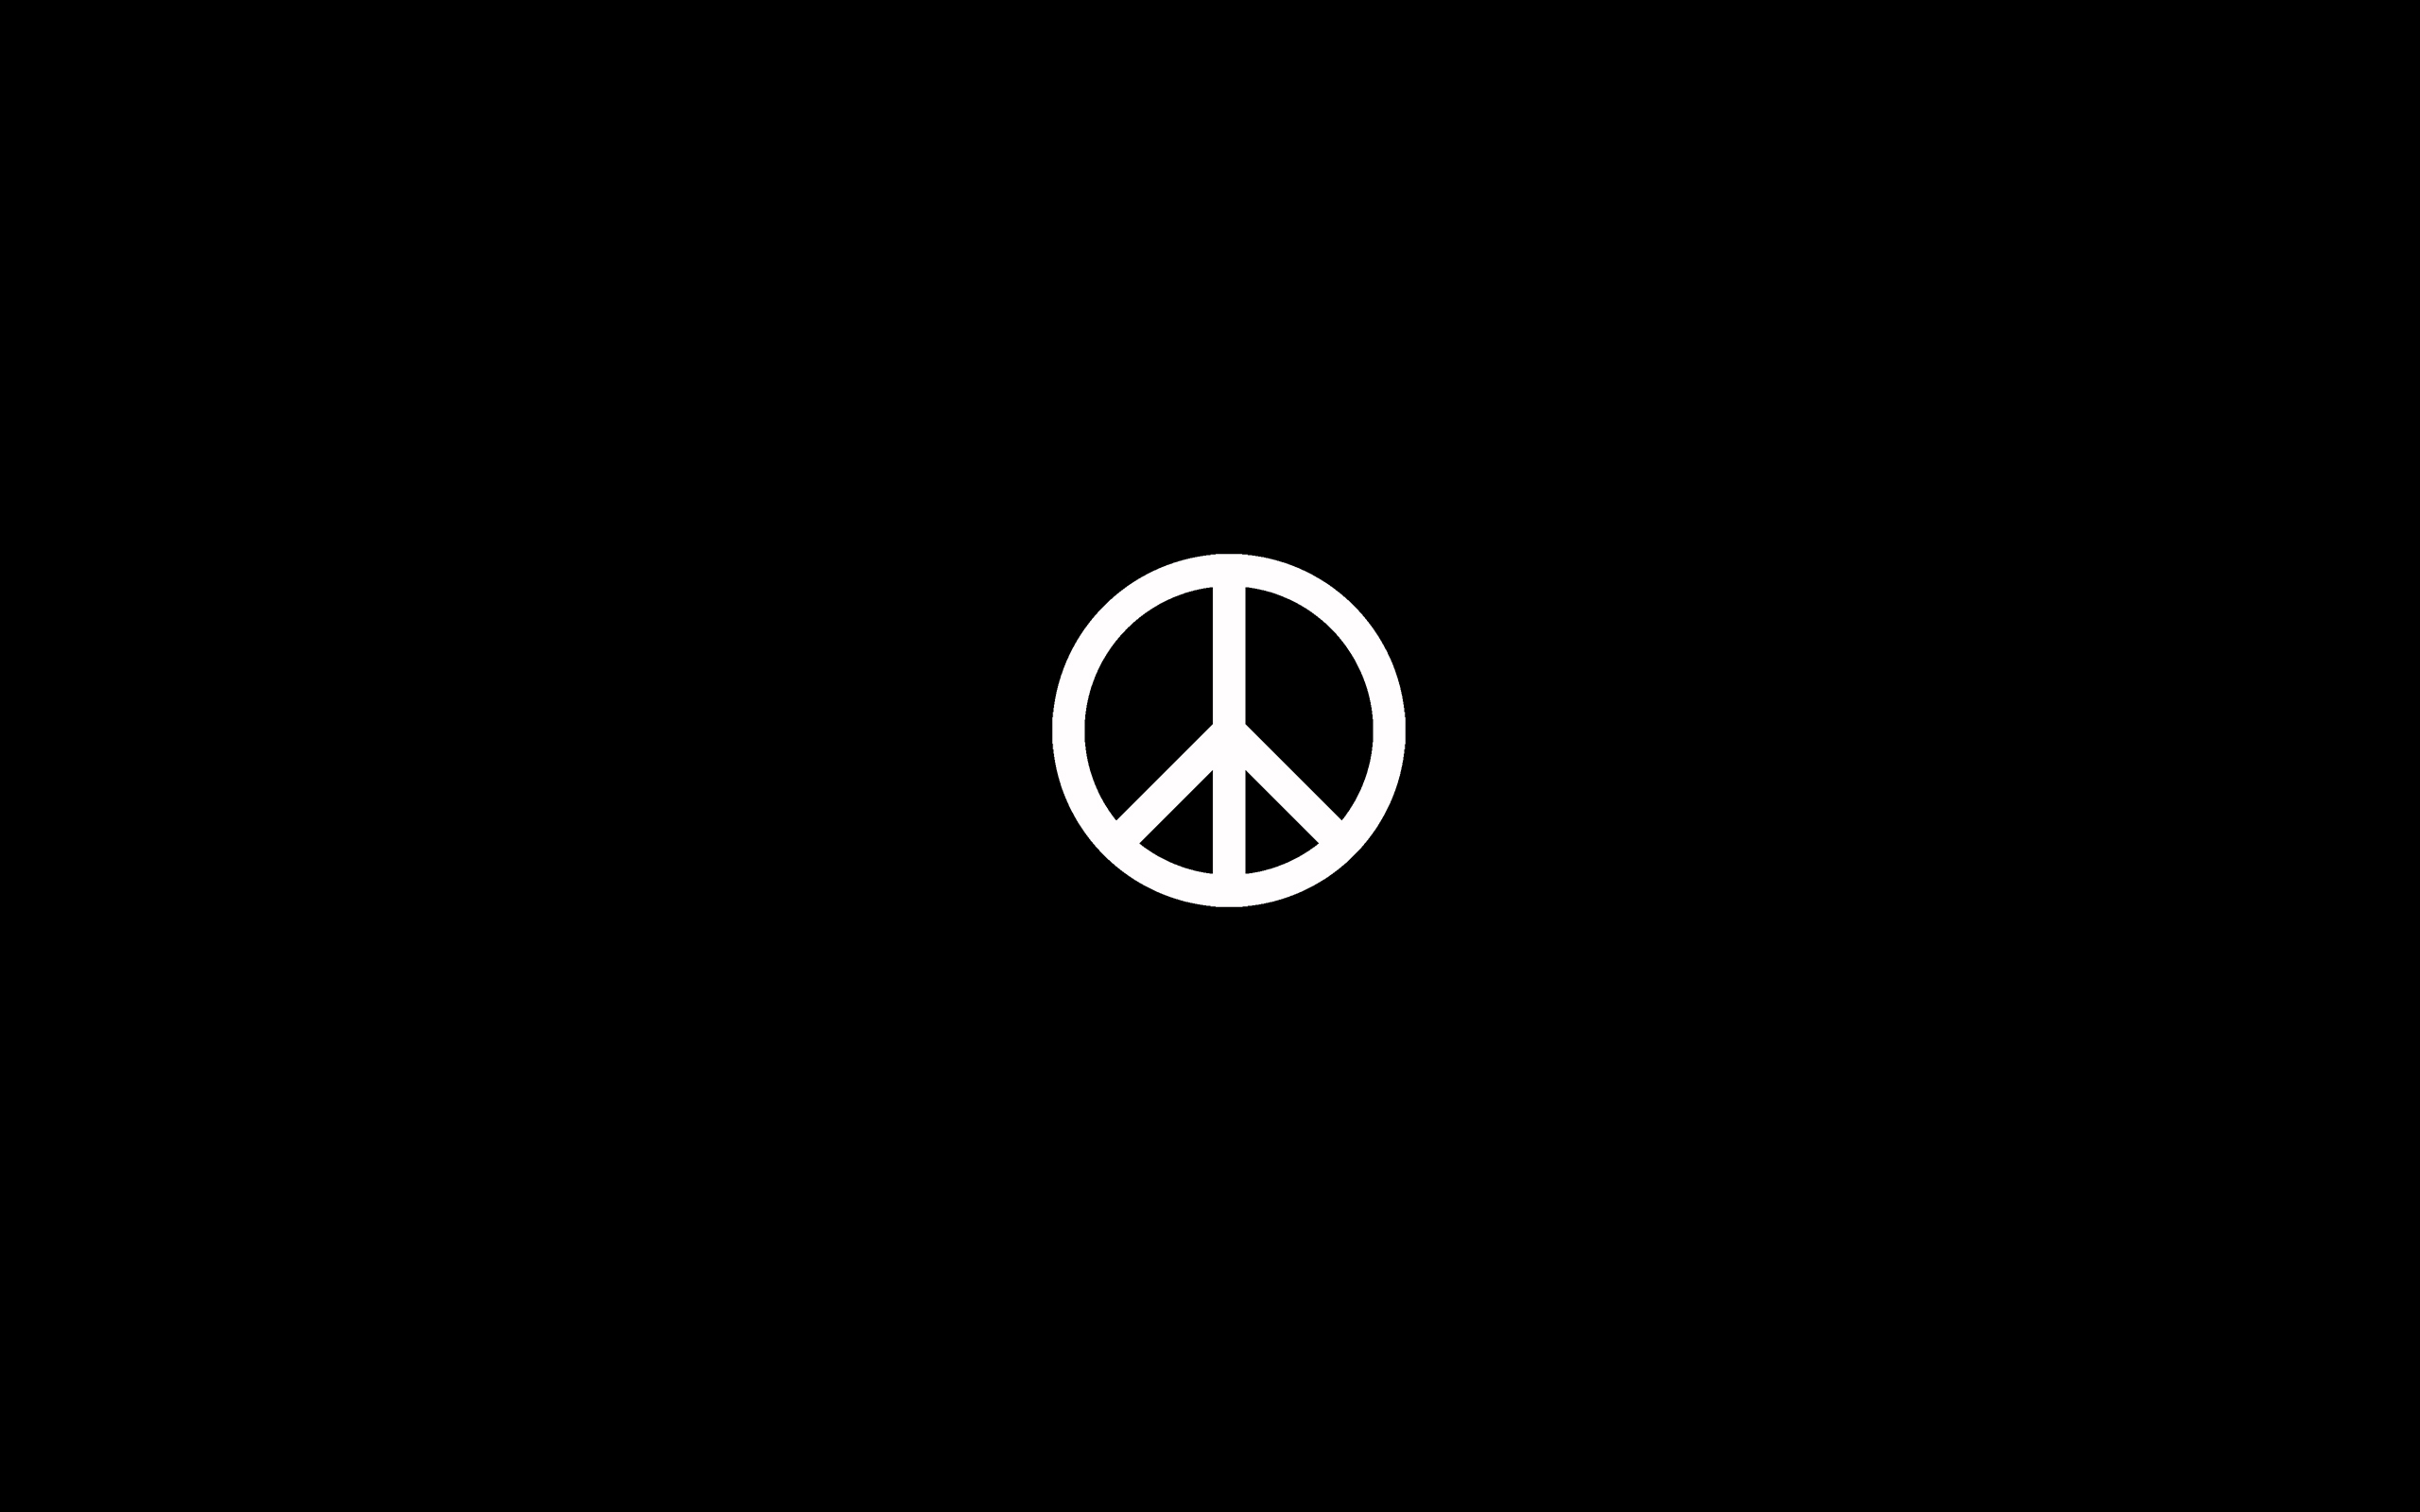 9 hd peace sign wallpapers - Peace hd wallpapers free download ...